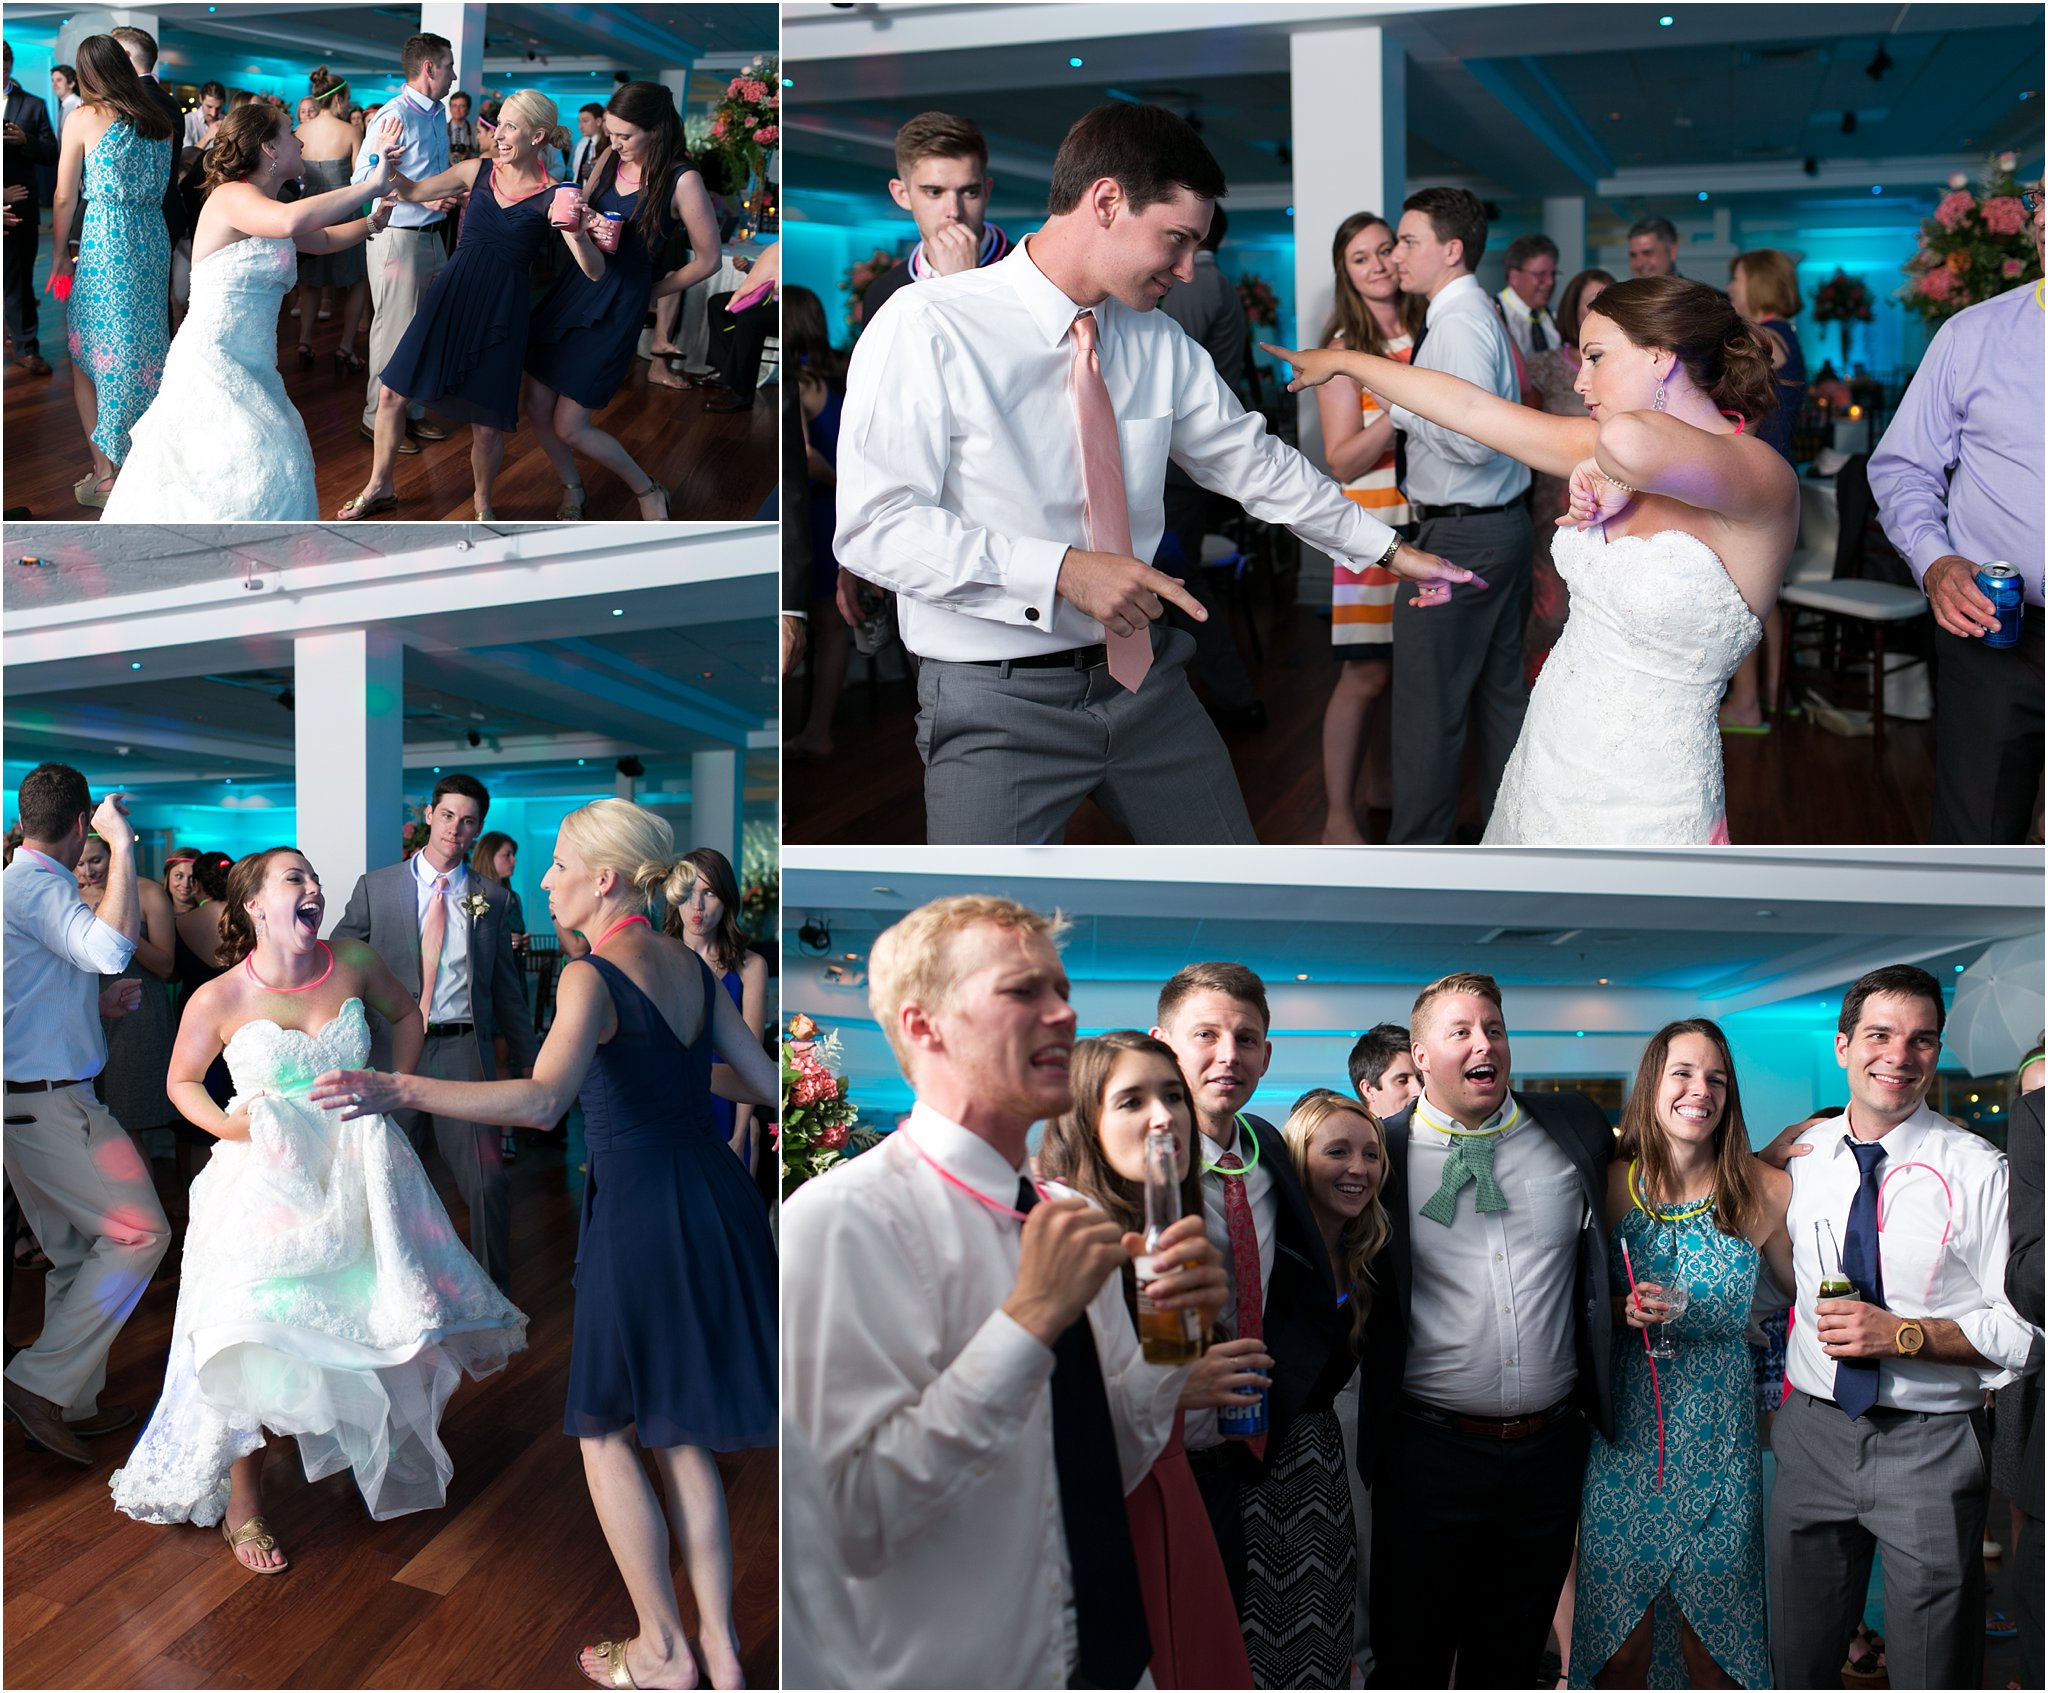 jessica_ryan_photography_wedding_photography_virginiabeach_virginia_candid_authentic_wedding_portraits_marina_shores_yacht_club_chesapeake_bay_1970